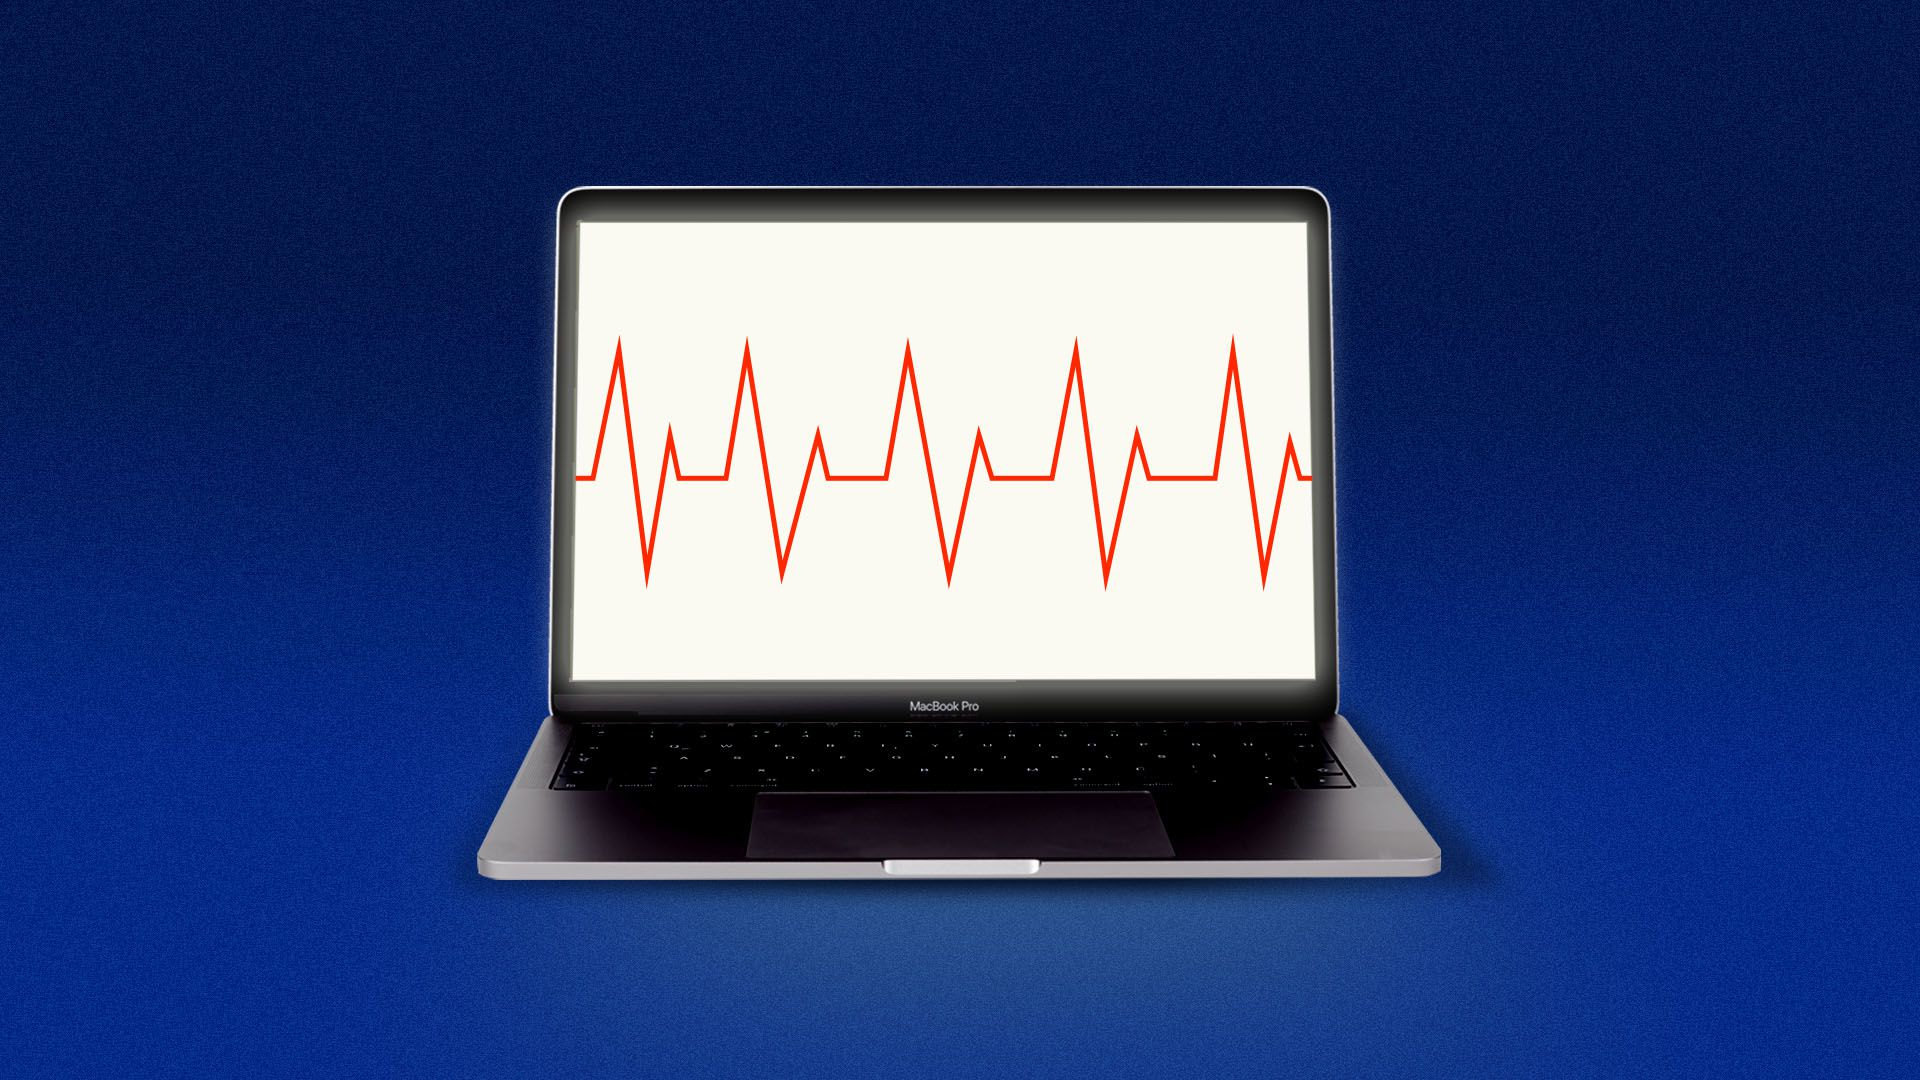 Illustration of an EKG monitor on a laptop screen